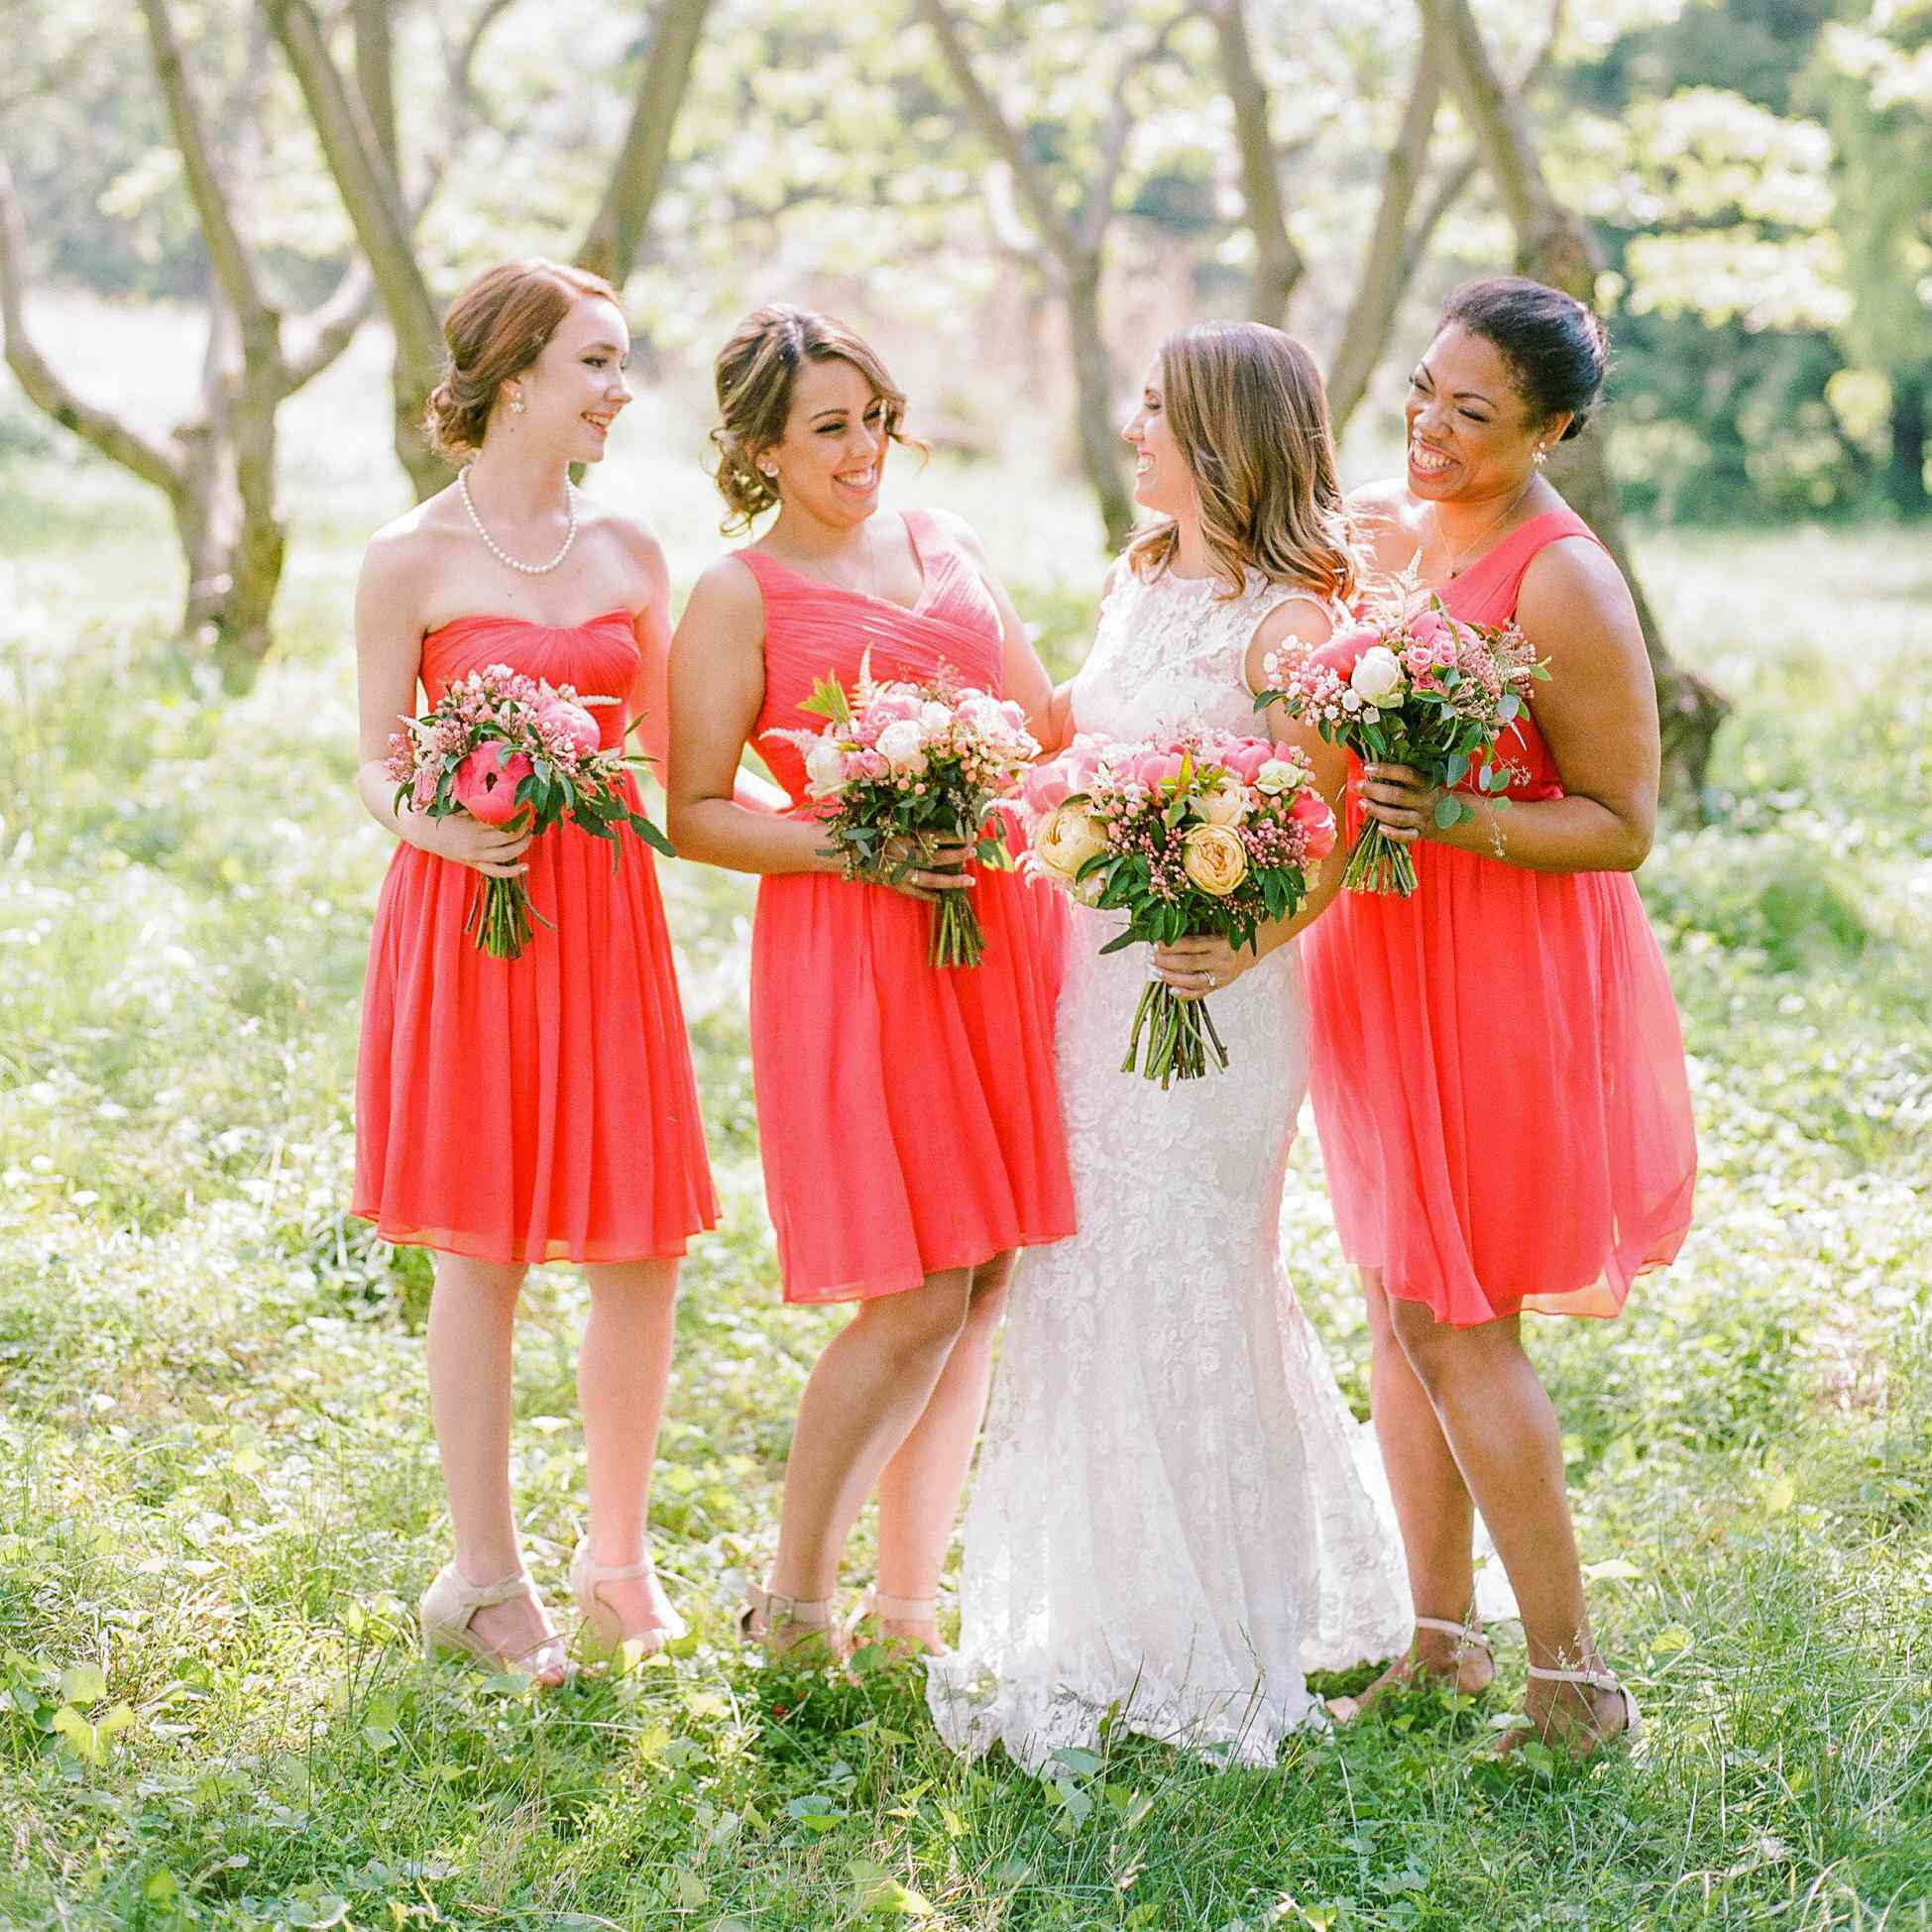 Do Bridesmaids Buy Wedding Gifts: Do Bridesmaids Need To Bring Gifts To All Pre-Wedding Events?